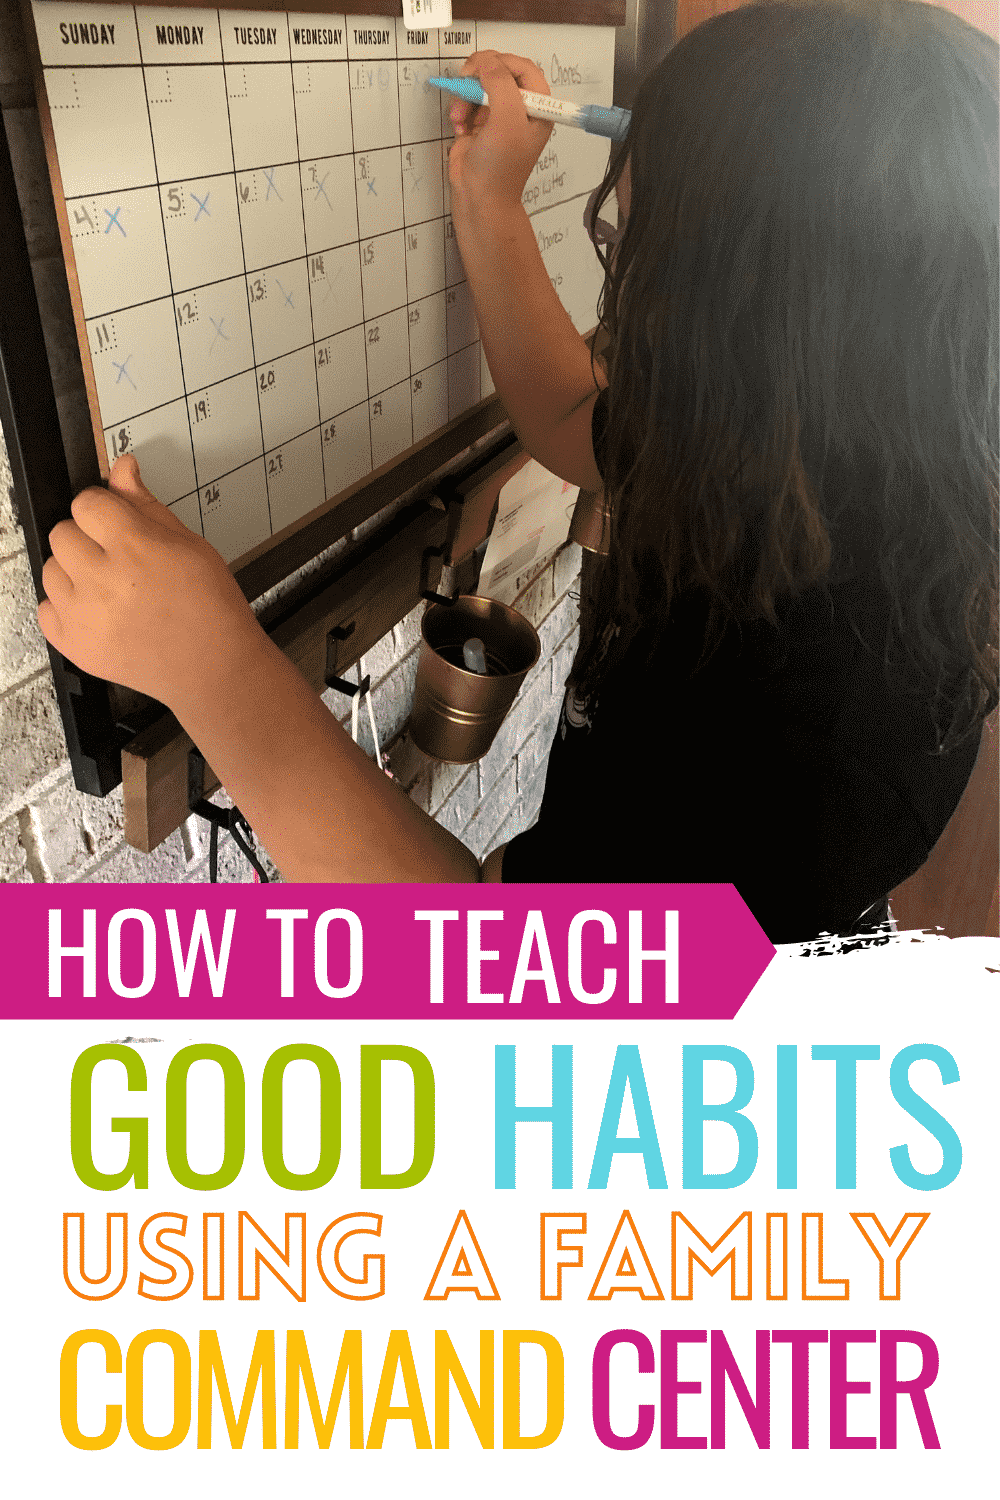 How to develop good habits in kids